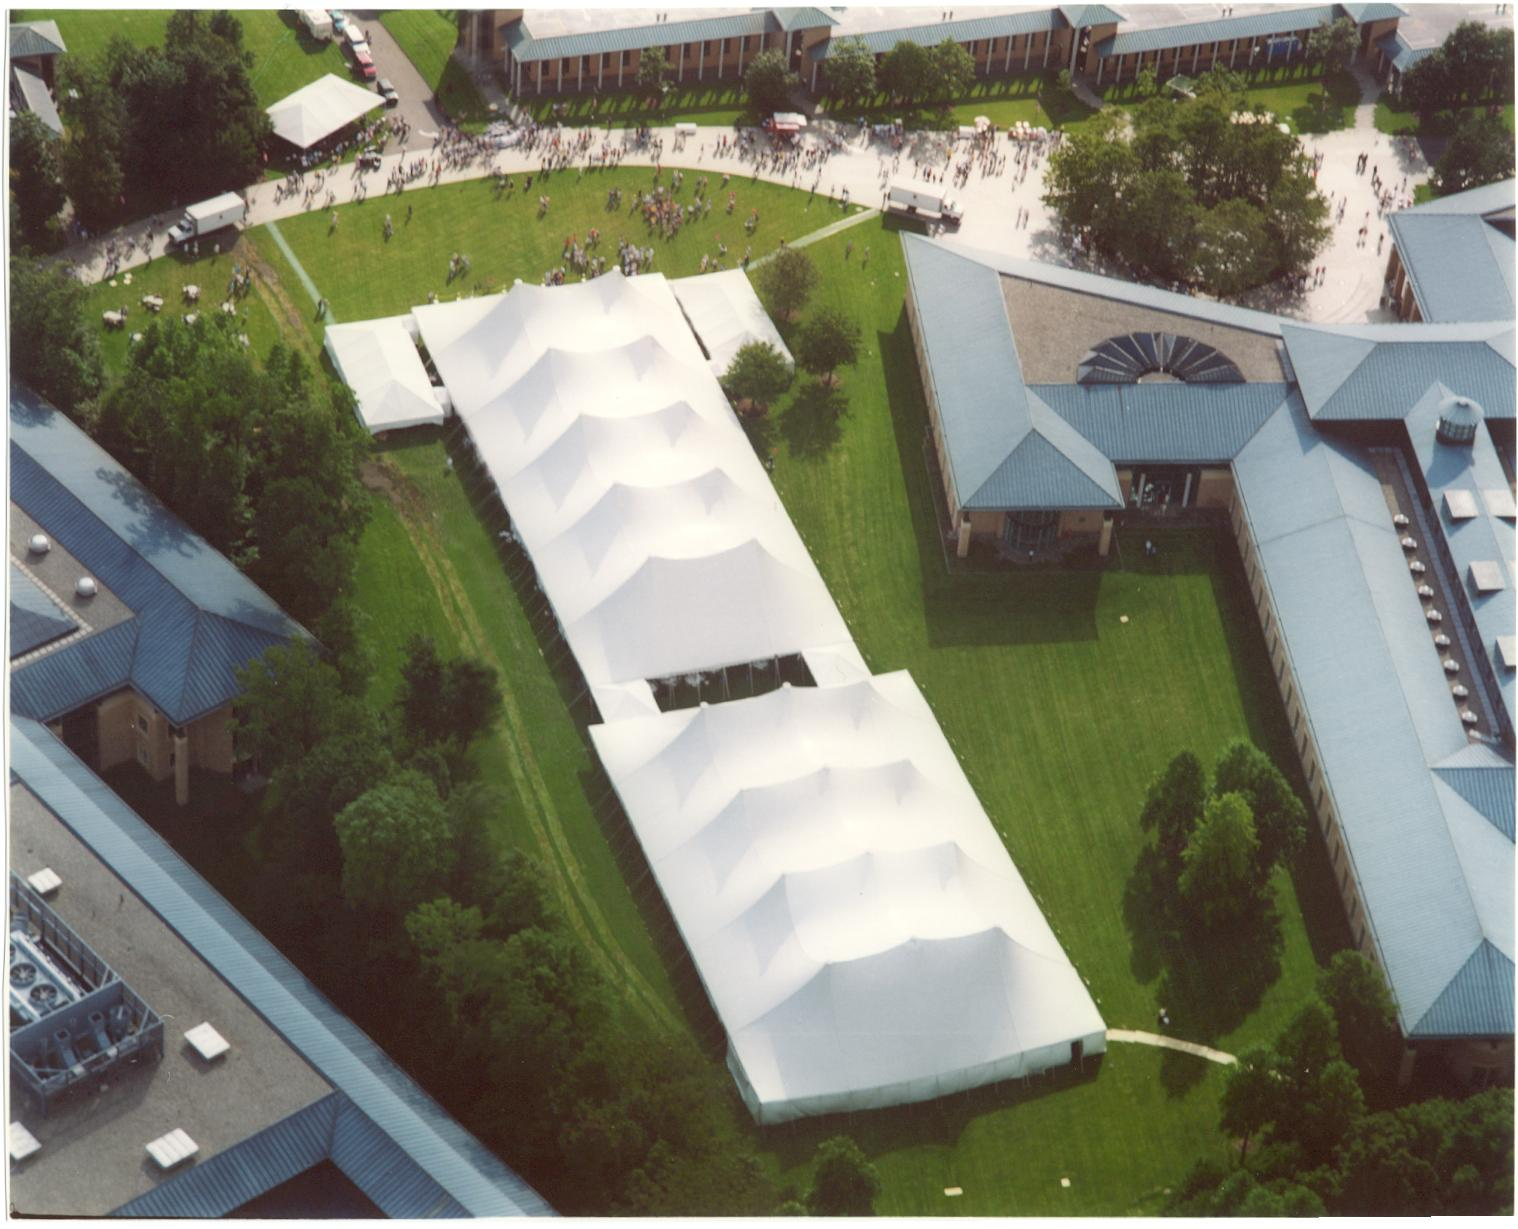 Aerial View of a Corporate Tent